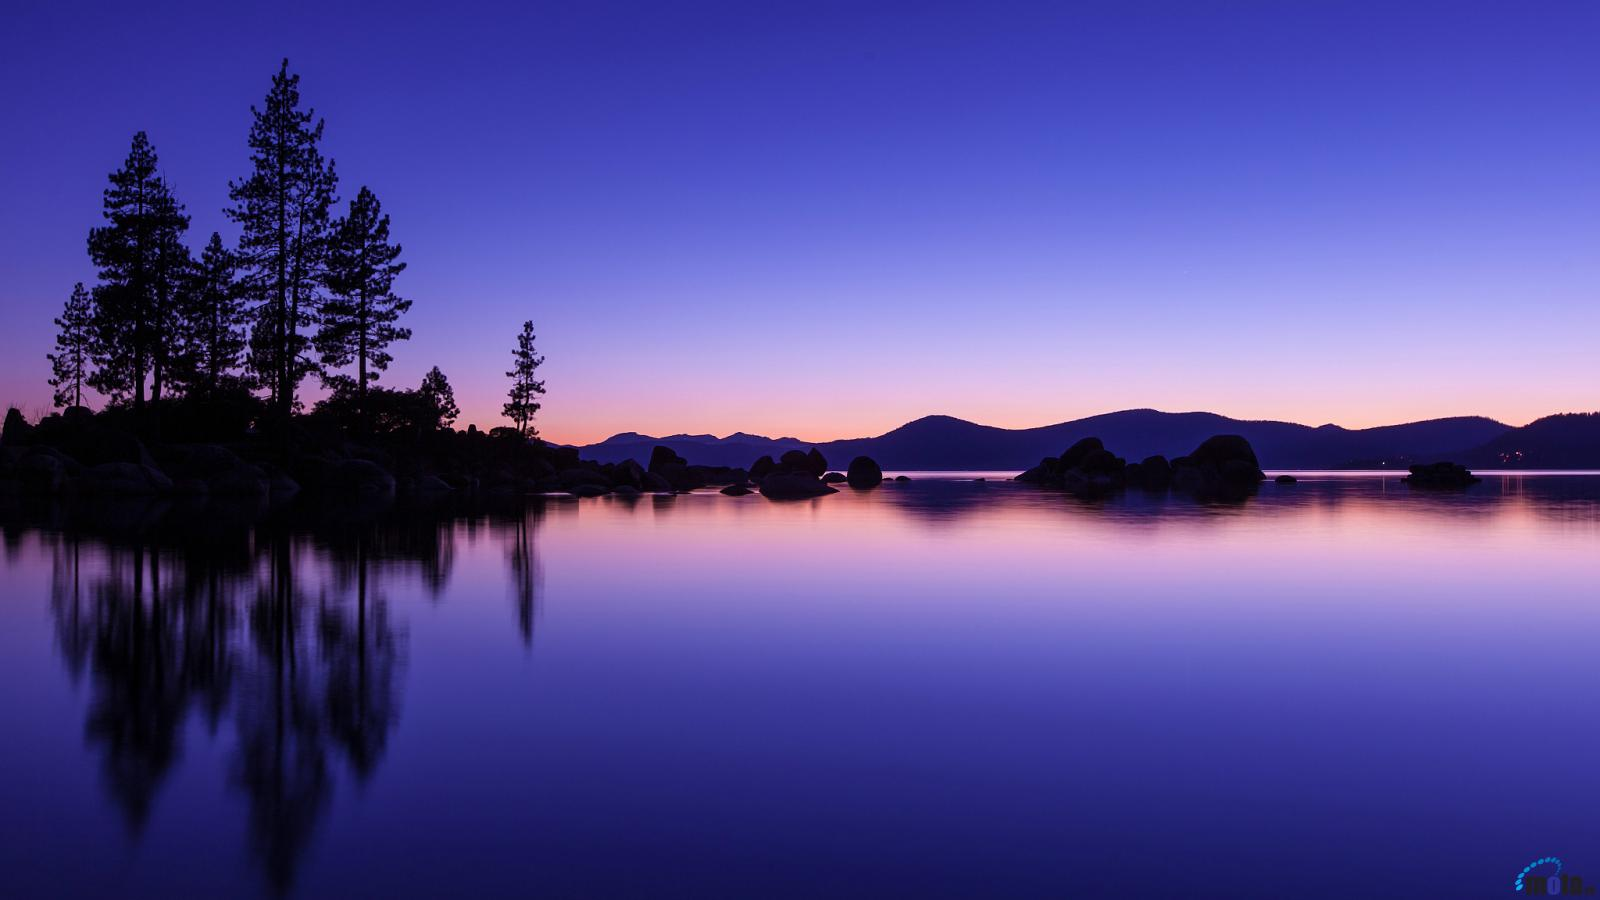 Download Wallpaper Romantic evening Lake Tahoe California 1600 x 1600x900